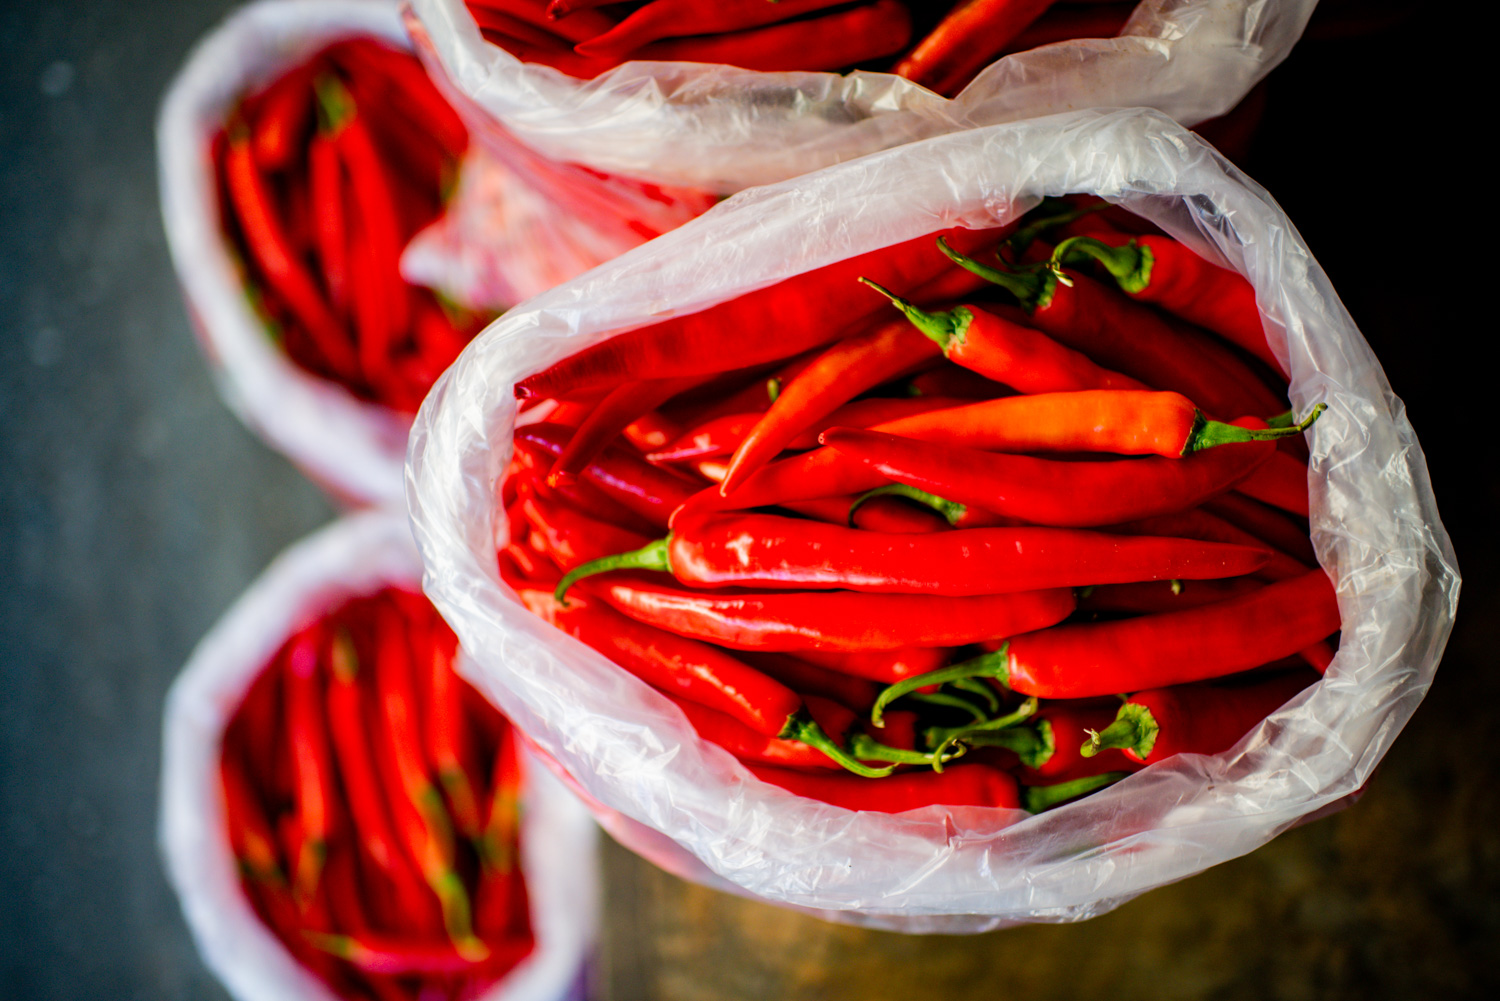 red chillies Documentary Travel Photography: How to Add More Interest to Your Travel Photos